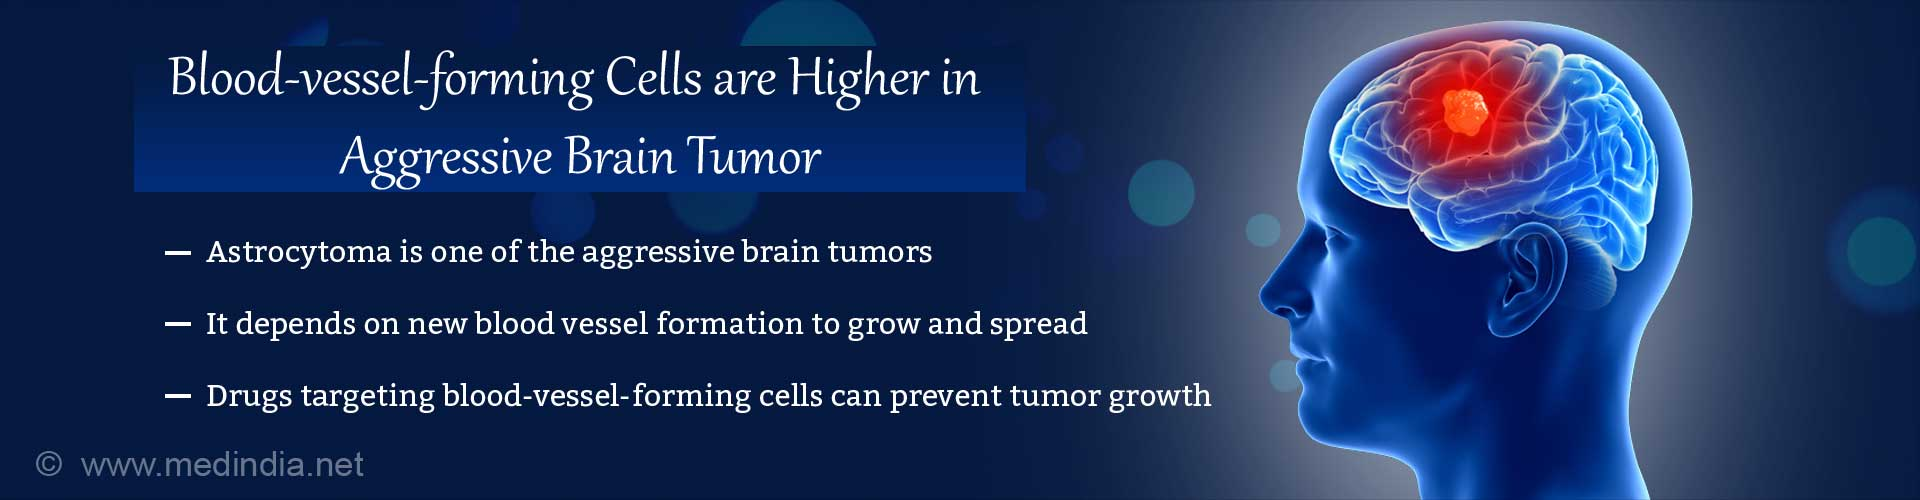 Blood-vessel-forming Cells Increase in Aggressive Brain Tumor